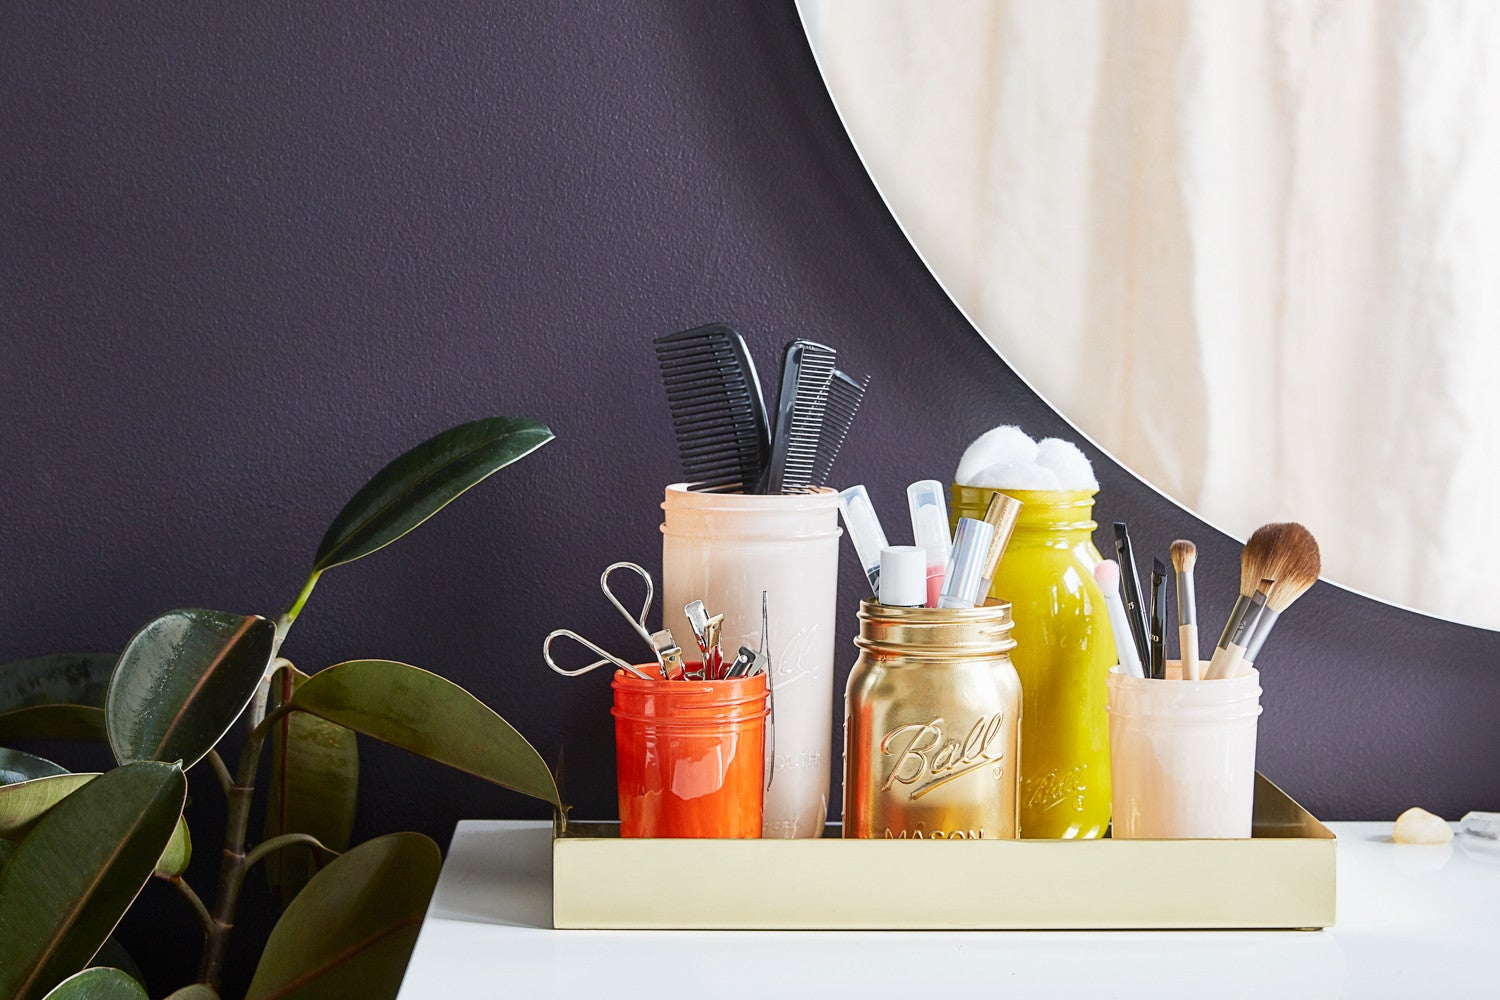 How to Finally Bring Order to Your Vanity